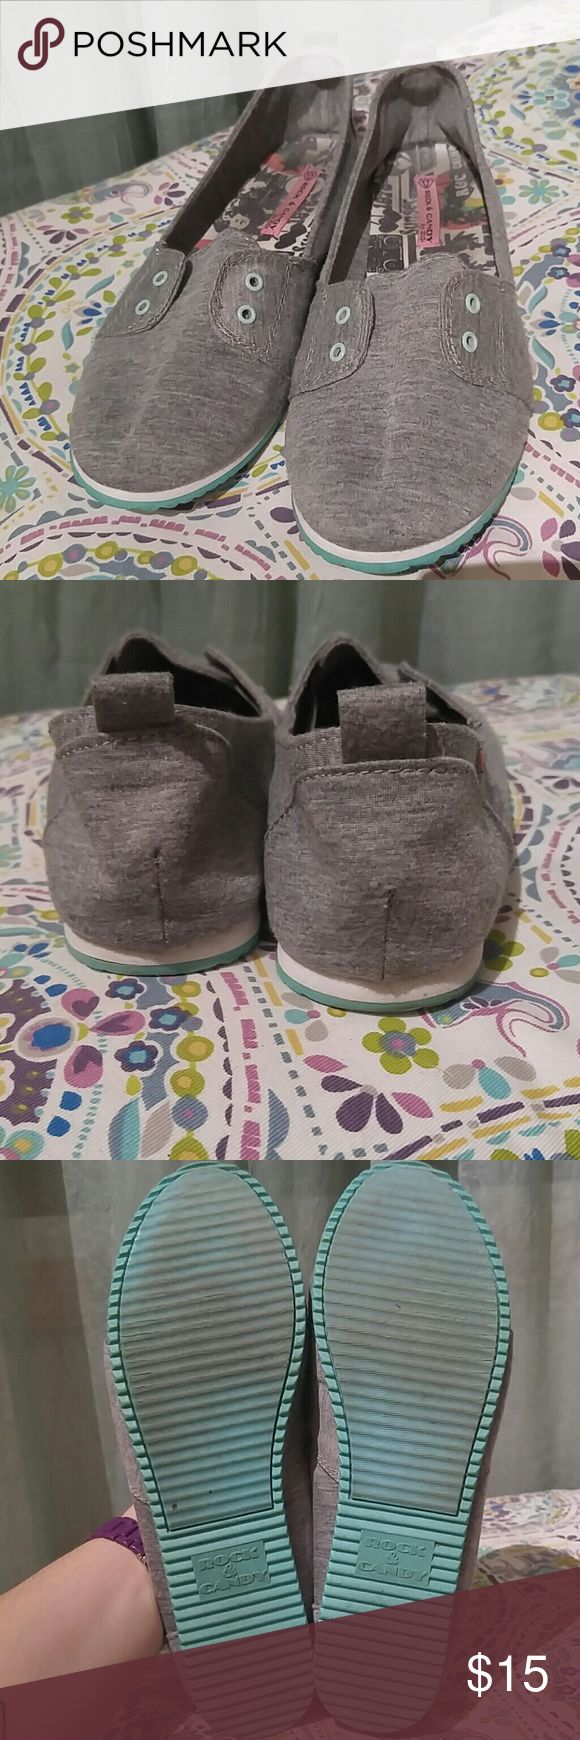 Rock & Candy slip ons gy ZiGi This is a very gently loved pair of gorgeous gray, aqua, and white slip on tennis shoes by Rock & Candy by ZiGi. They don't require laces they have elastic to hold the tongue in place. Rock & Candy by ZiGi Shoes Sneakers